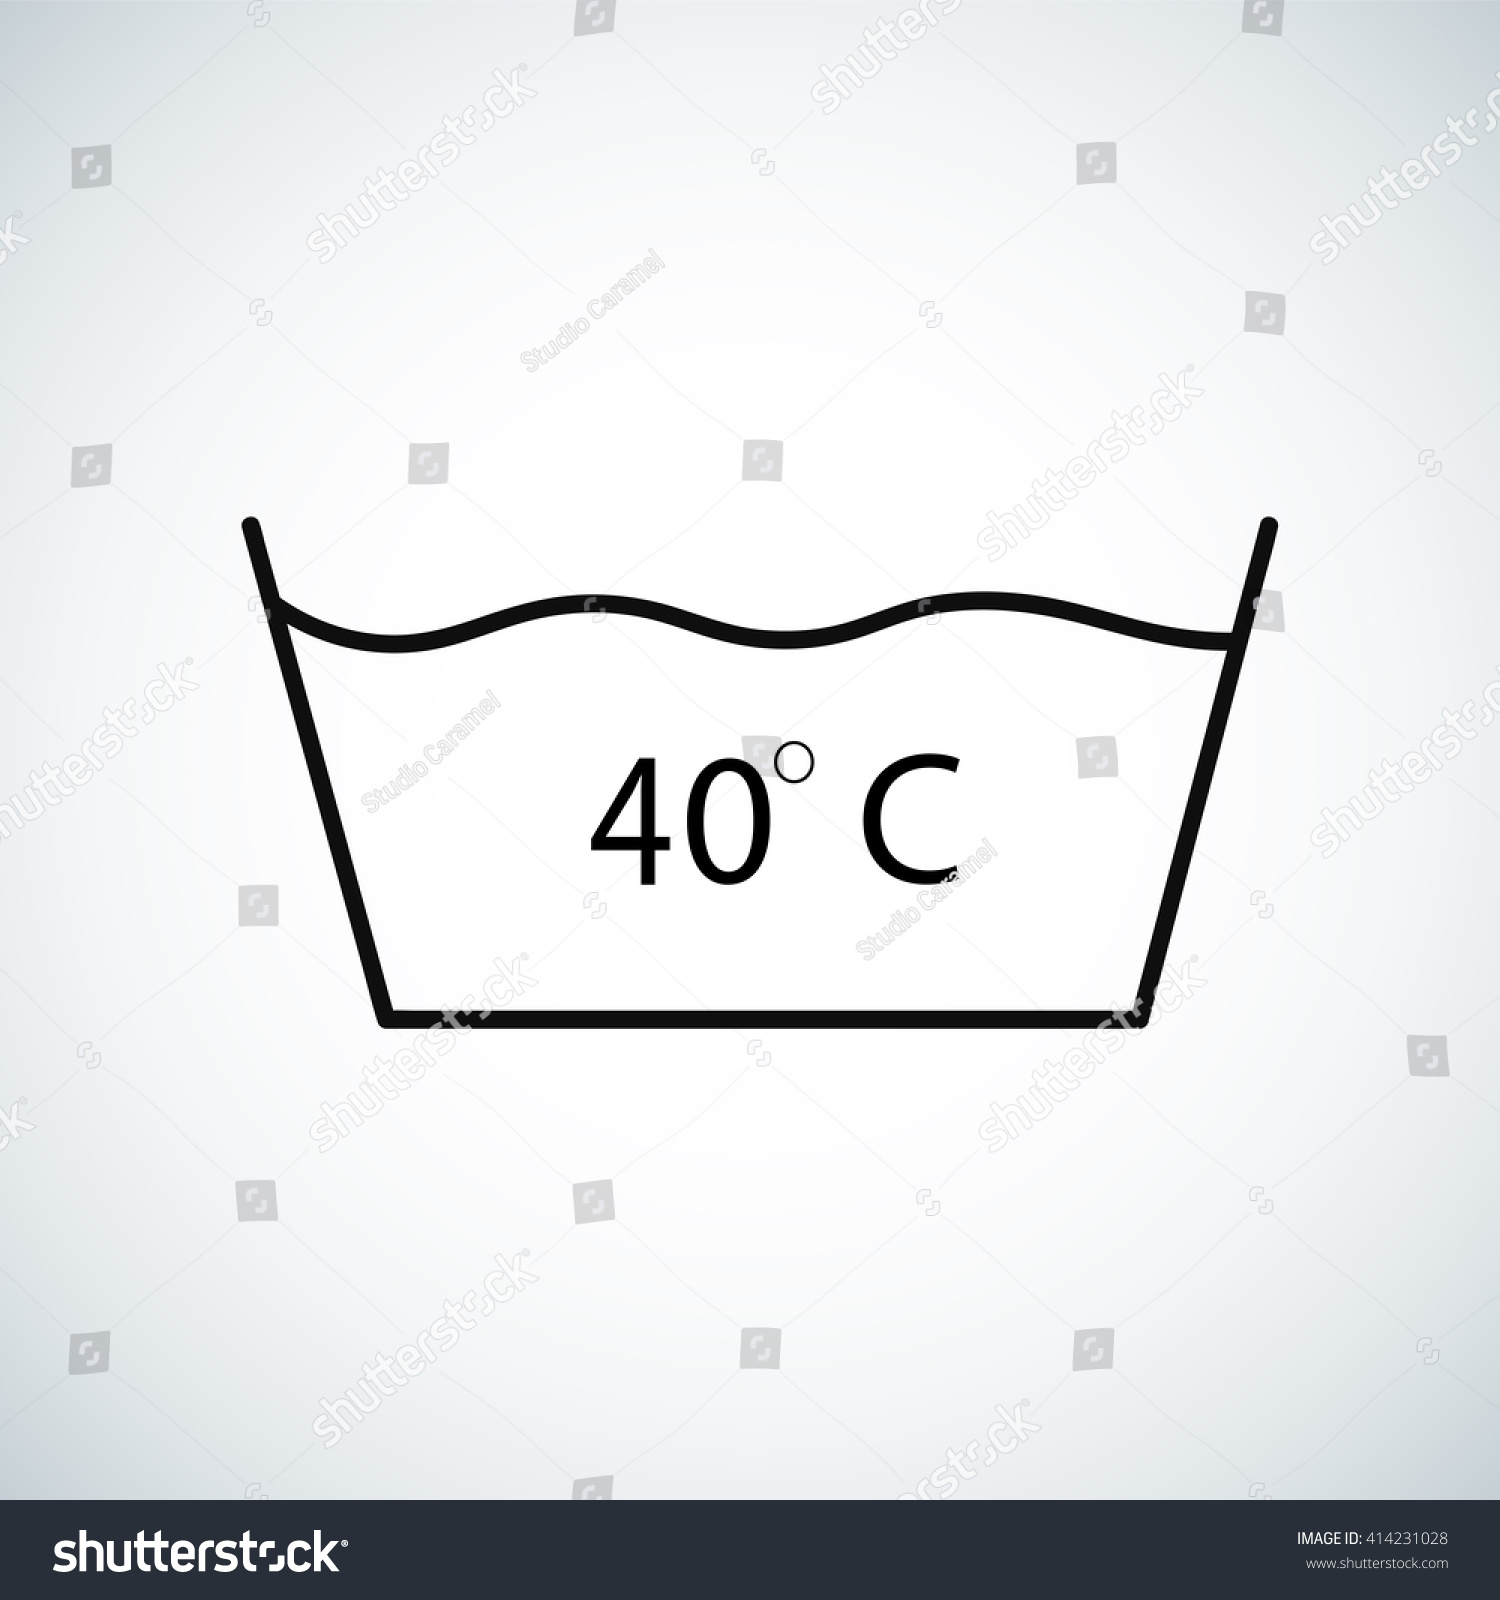 Washing Under 40 Degrees Celsius Textile Stock Vector 414231028